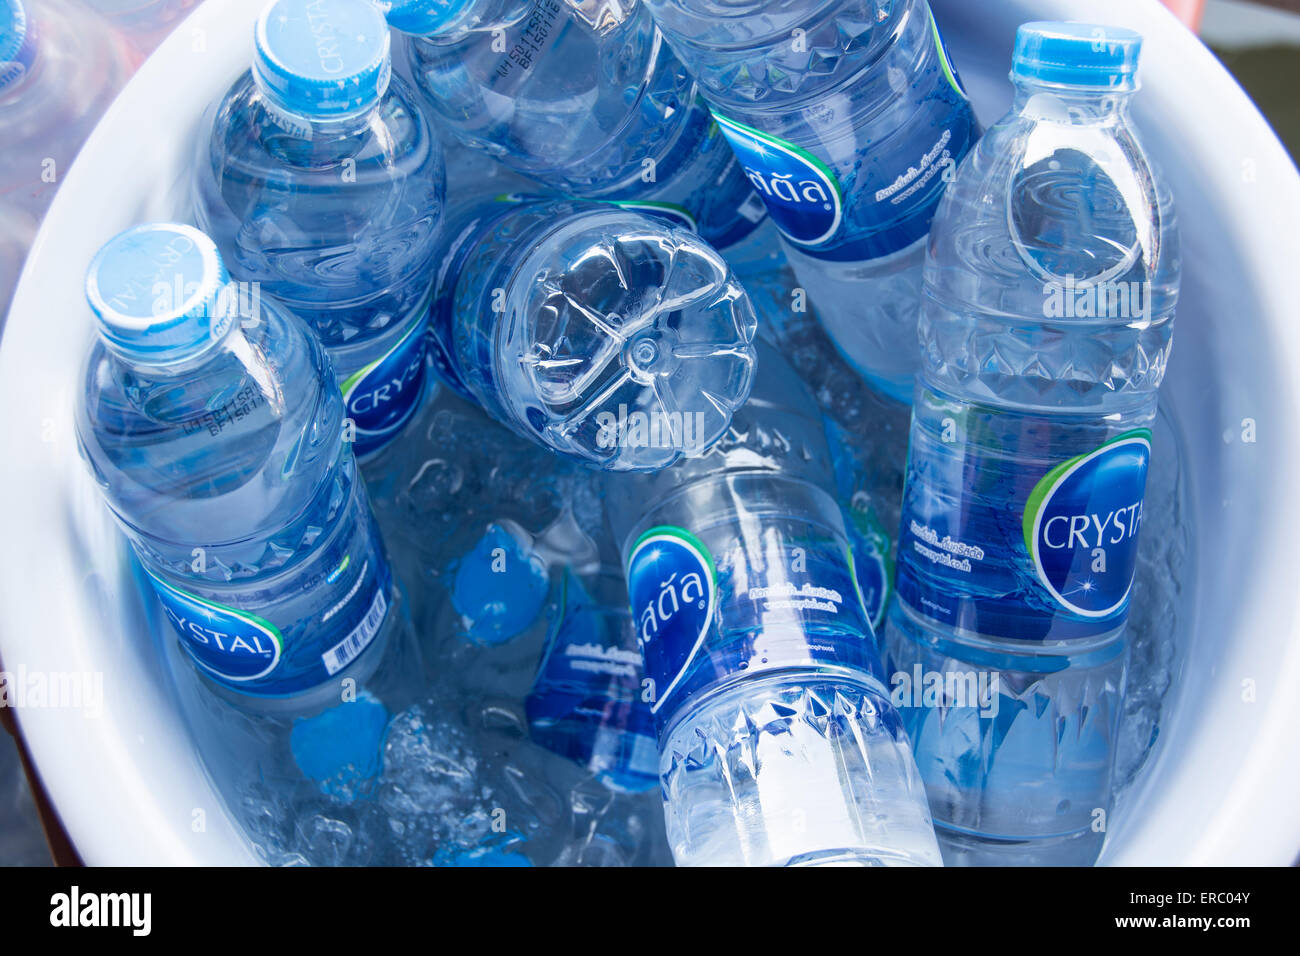 A bucket of bottled waters. - Stock Image